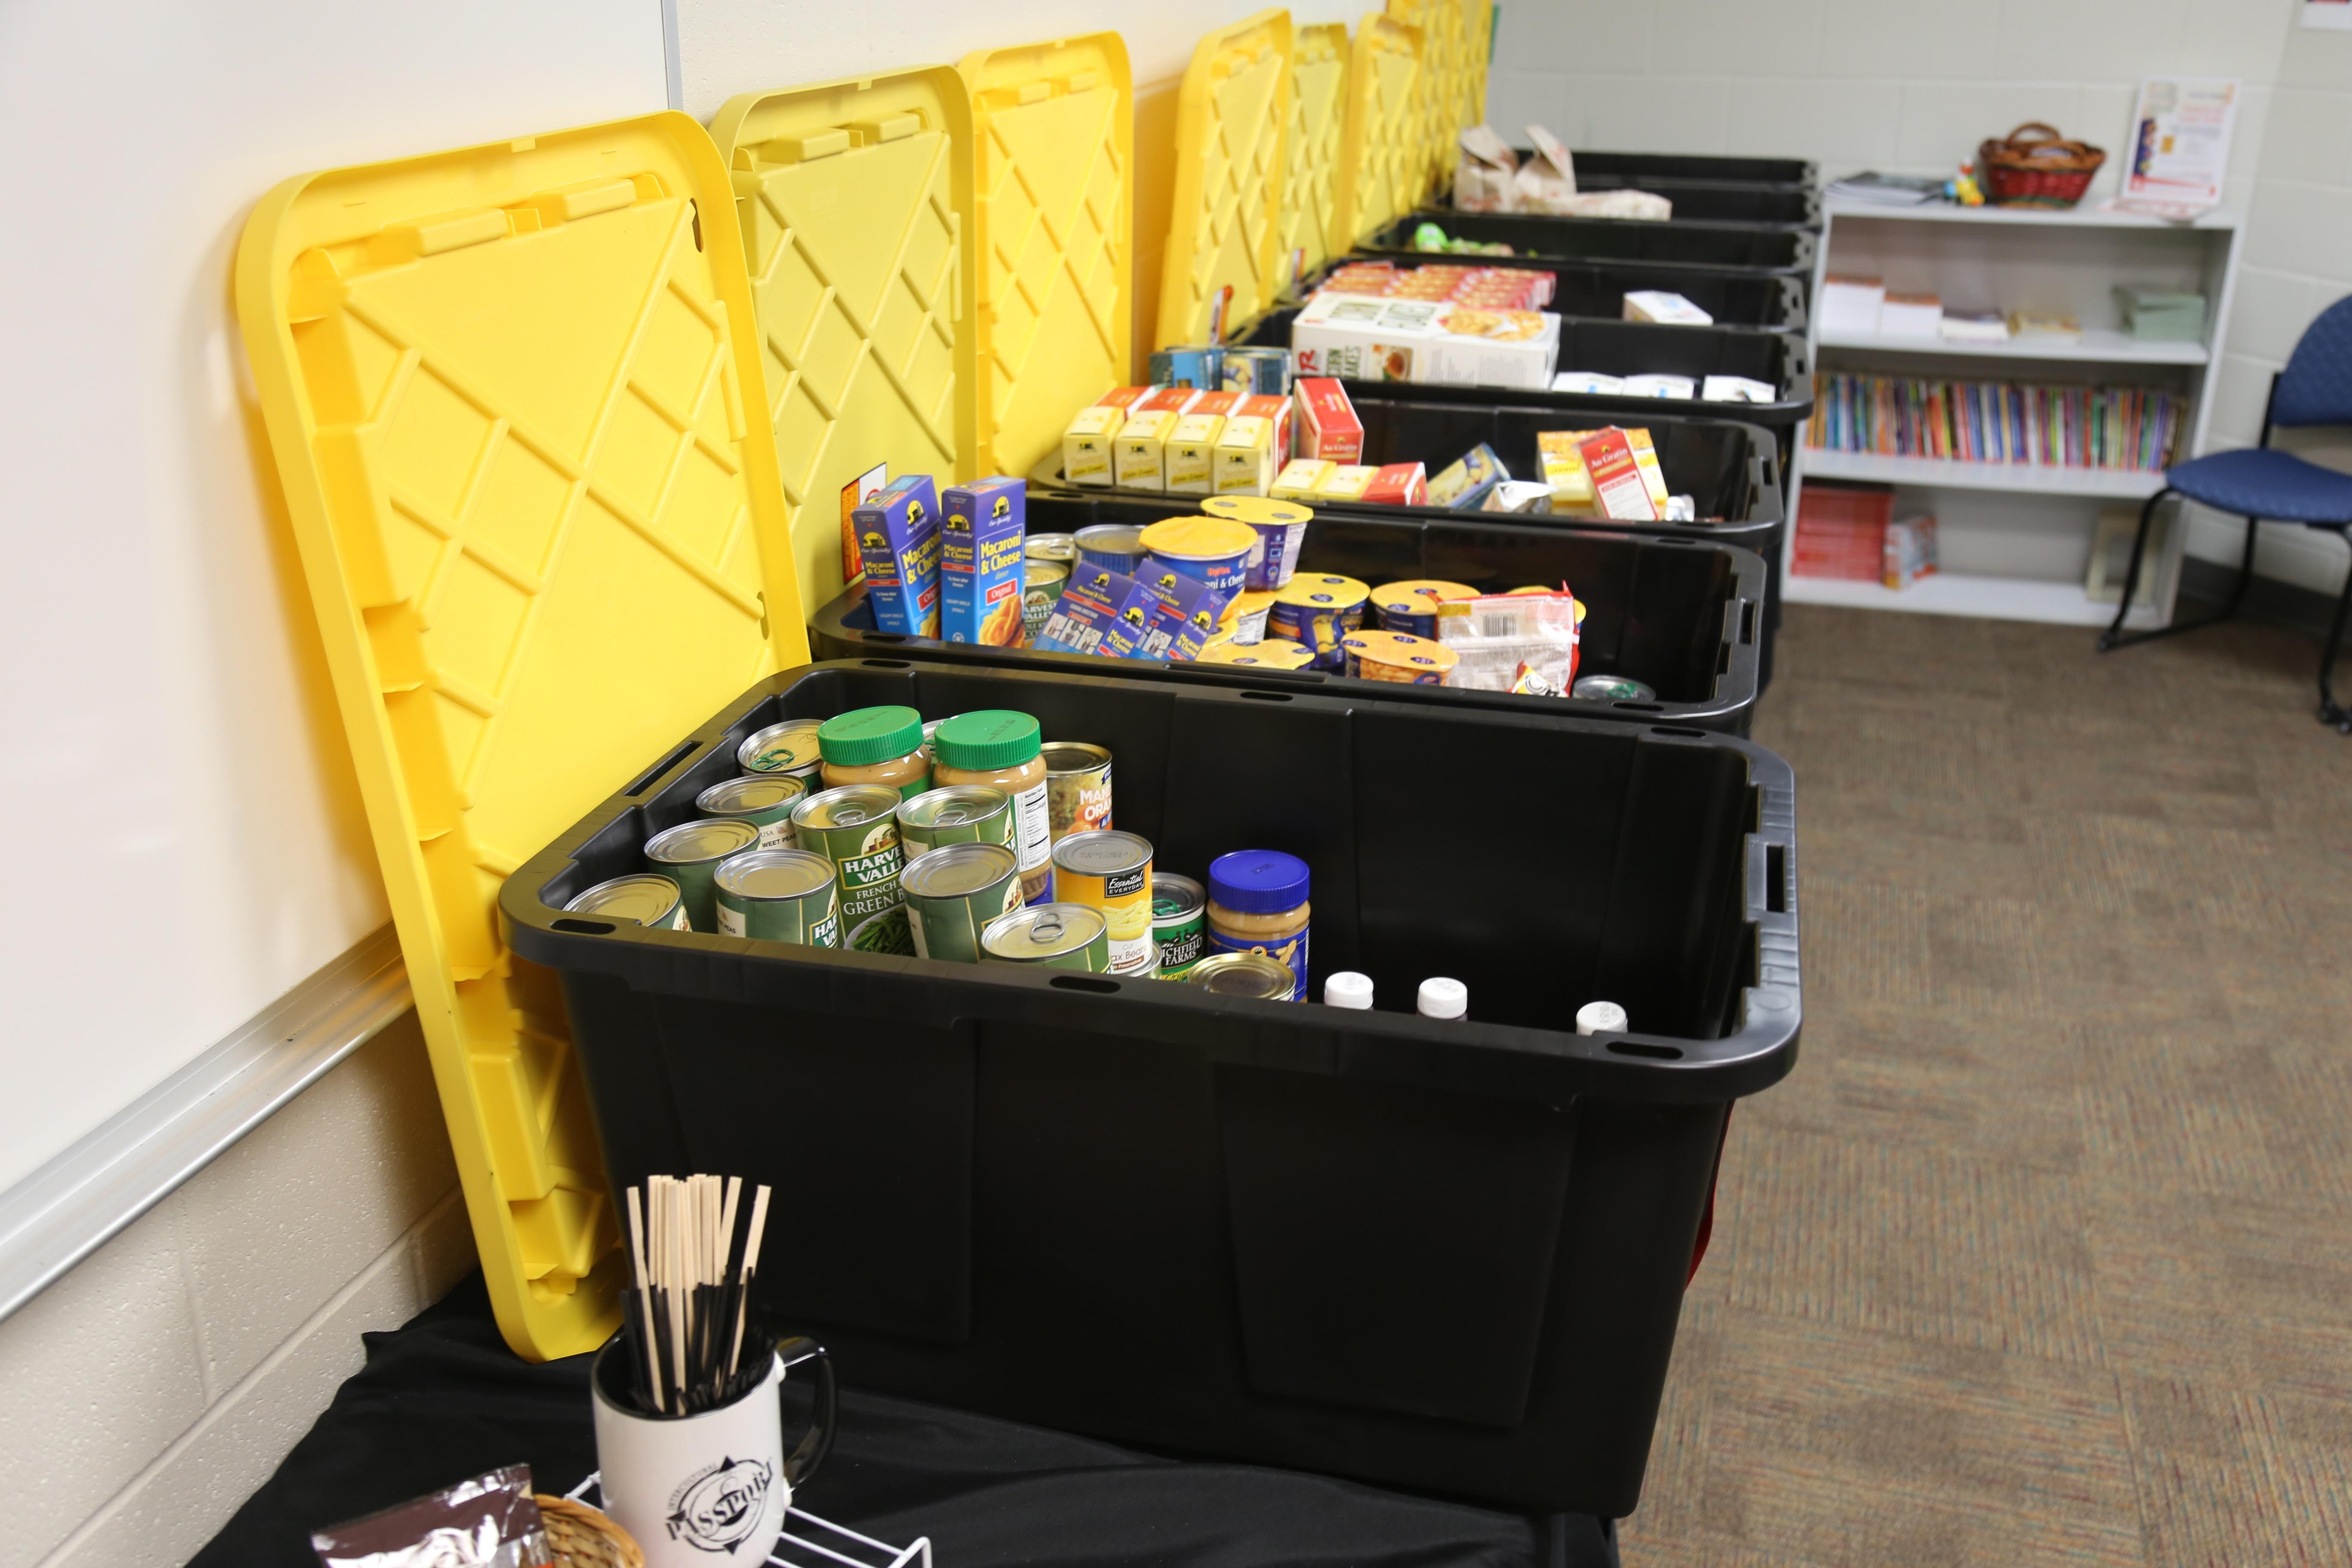 Images of plastic tubs at the Resource & Support Center.